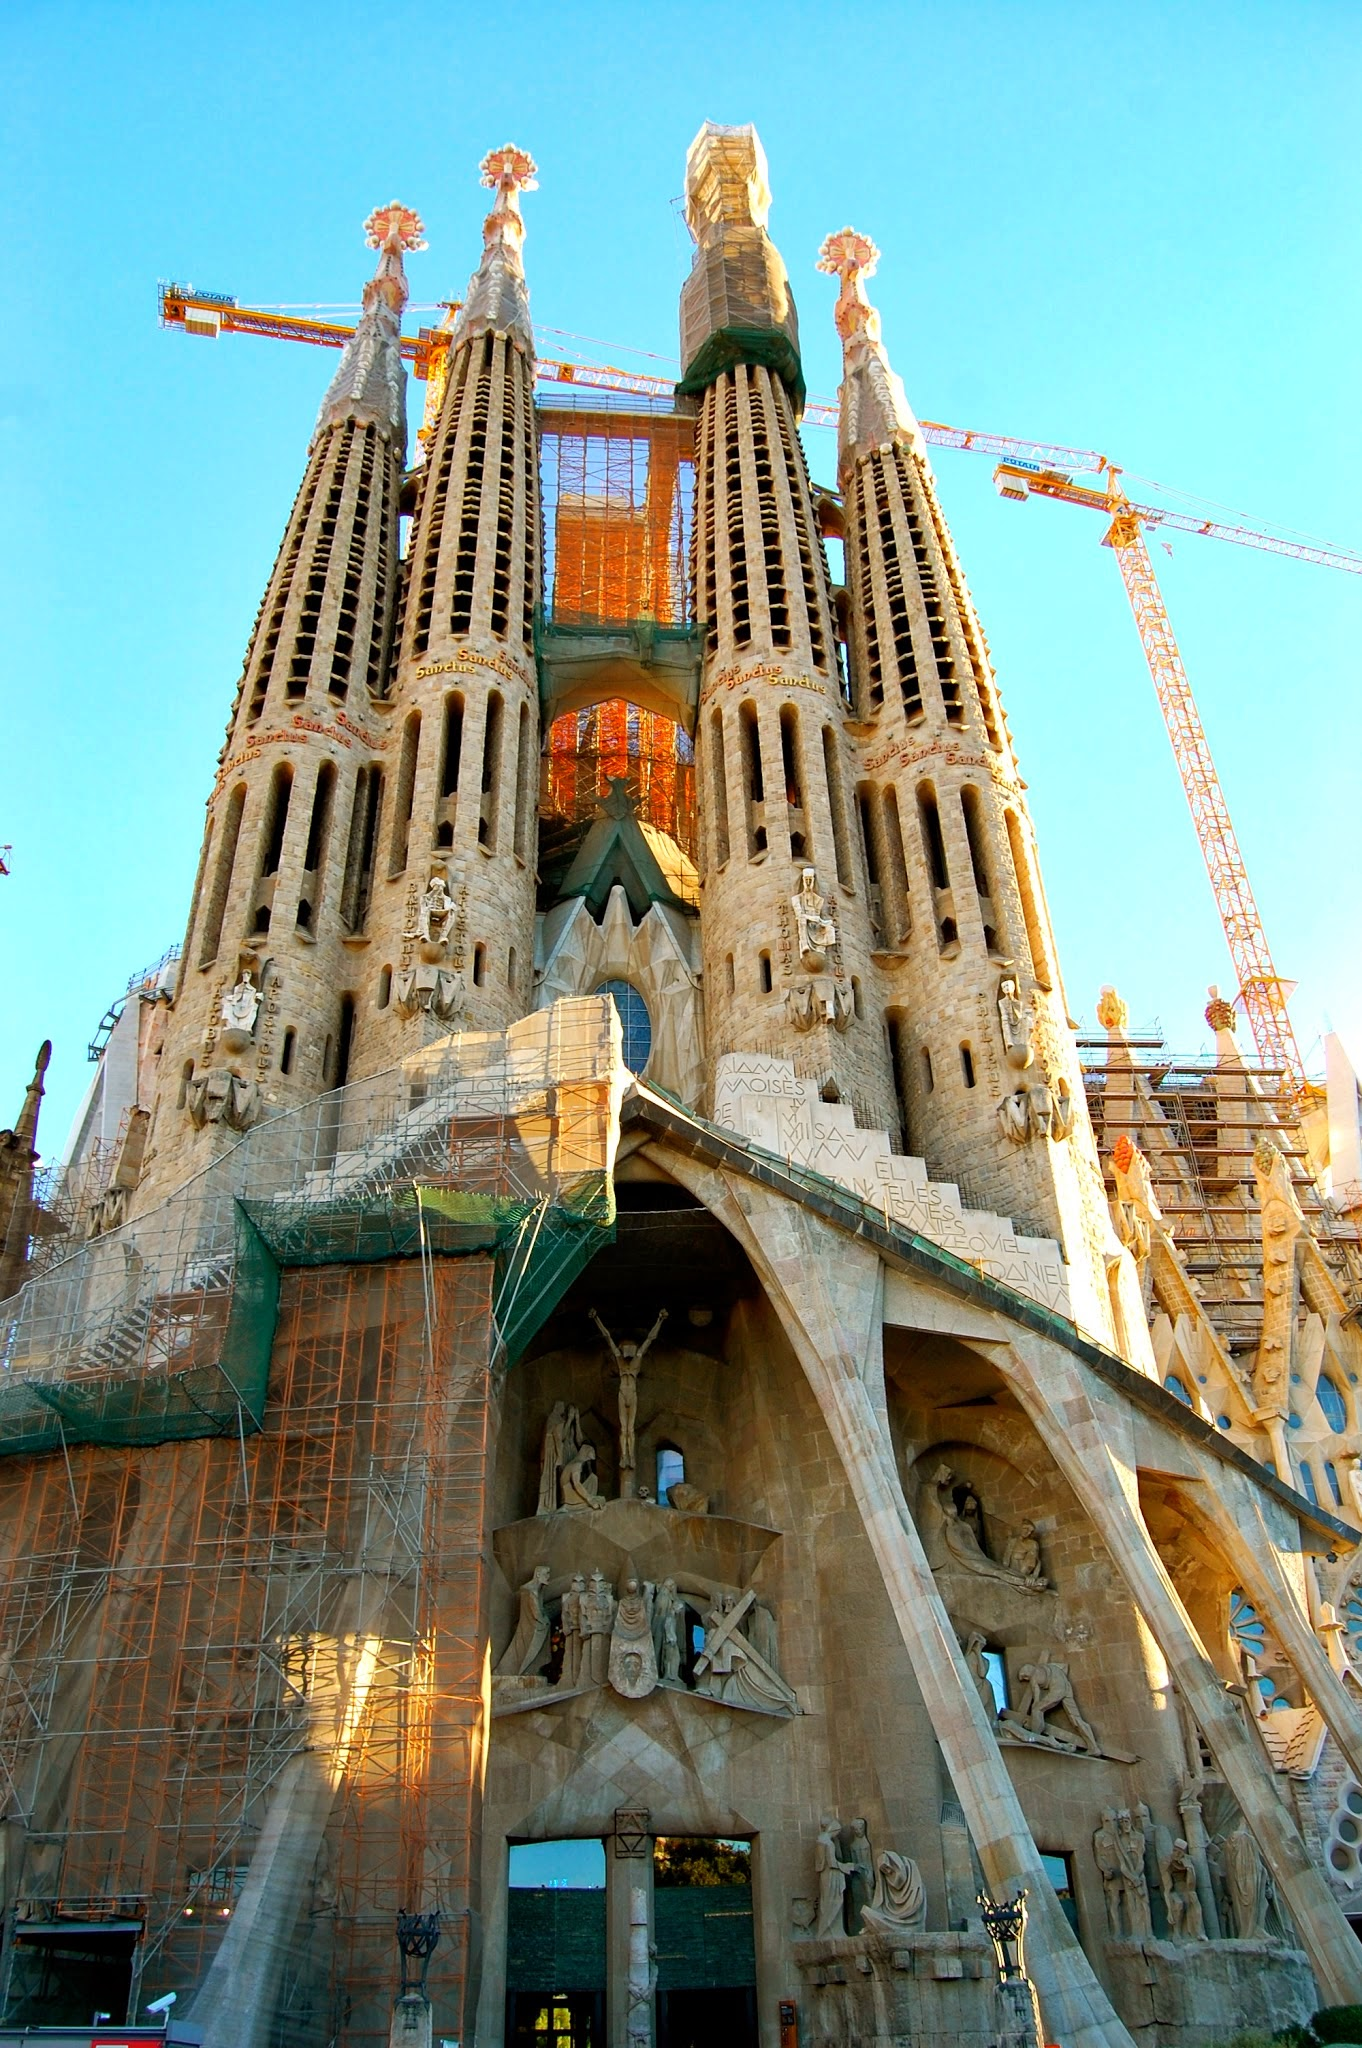 Repairs of the Passion Facade of the Sagrada Familia